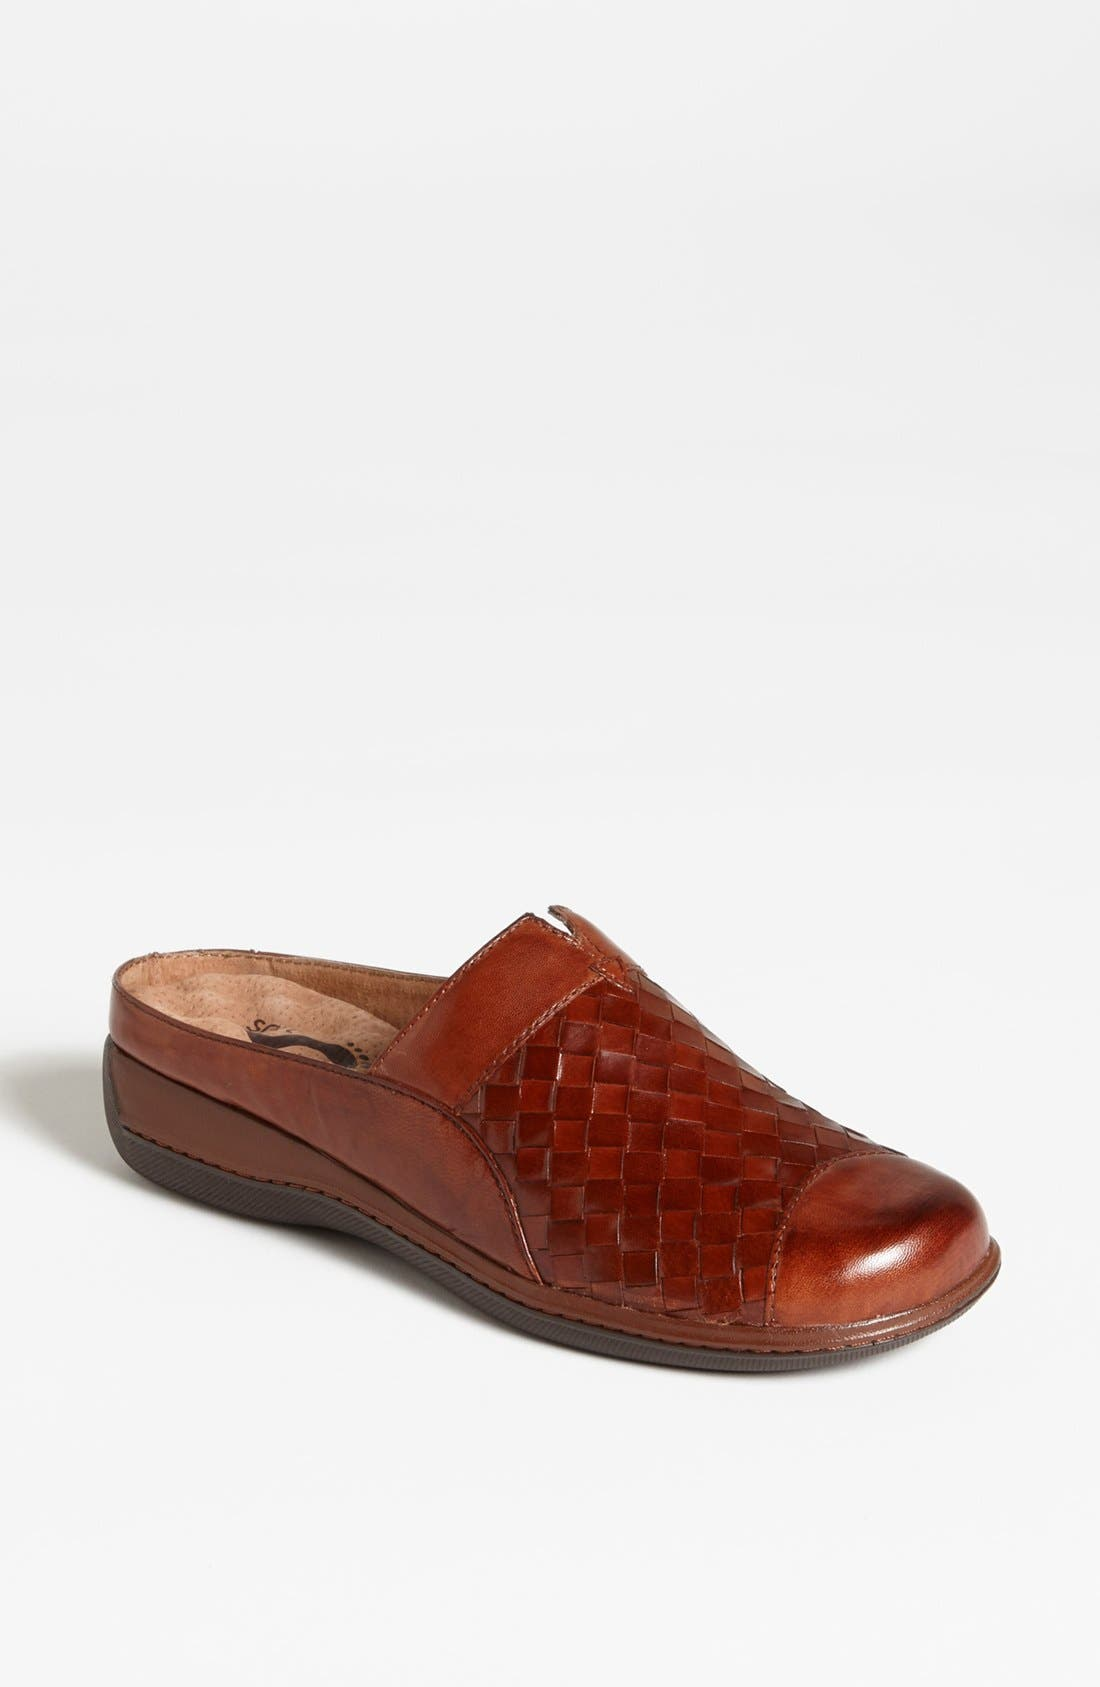 'San Marcos' Clog,                         Main,                         color, Rust Burnished